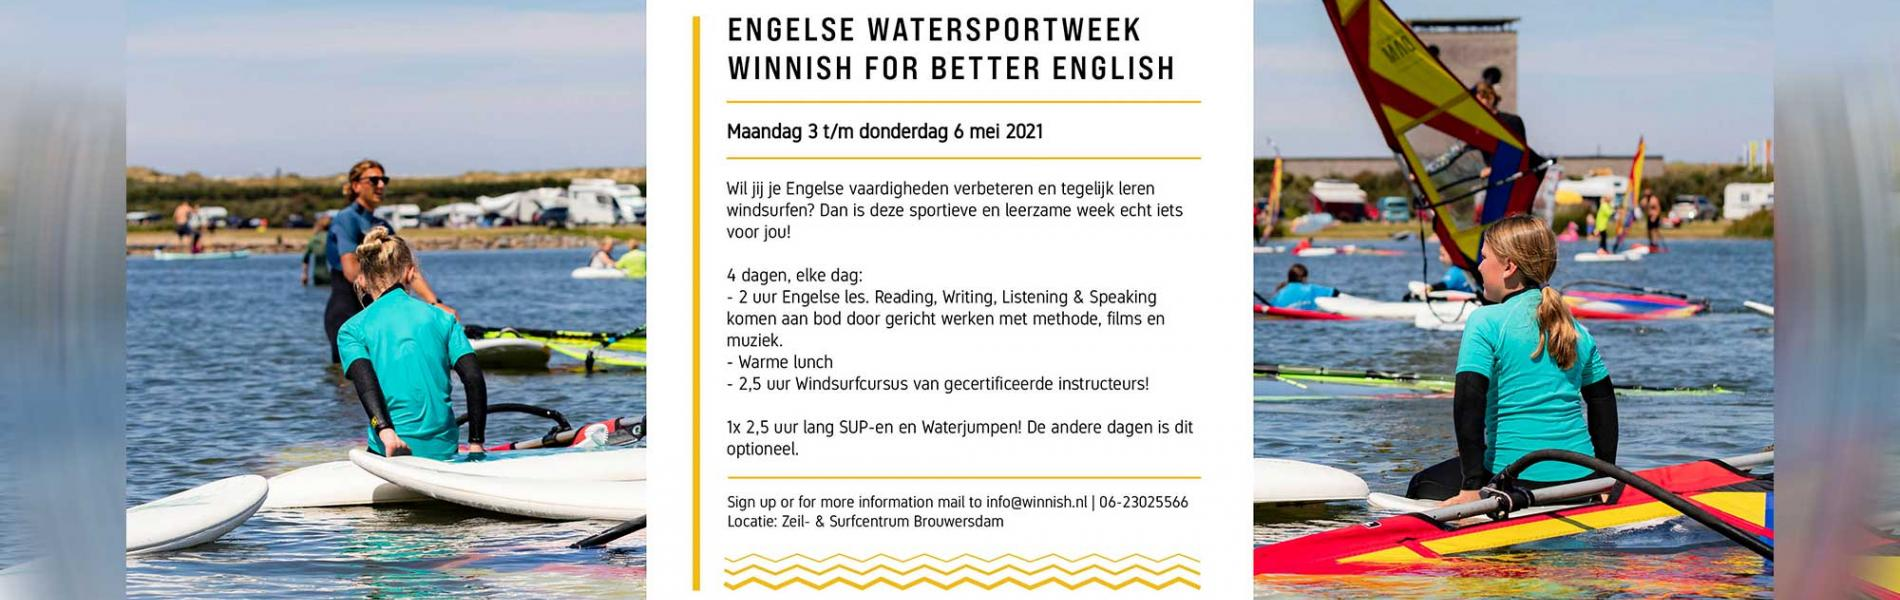 Engelse watersport week!